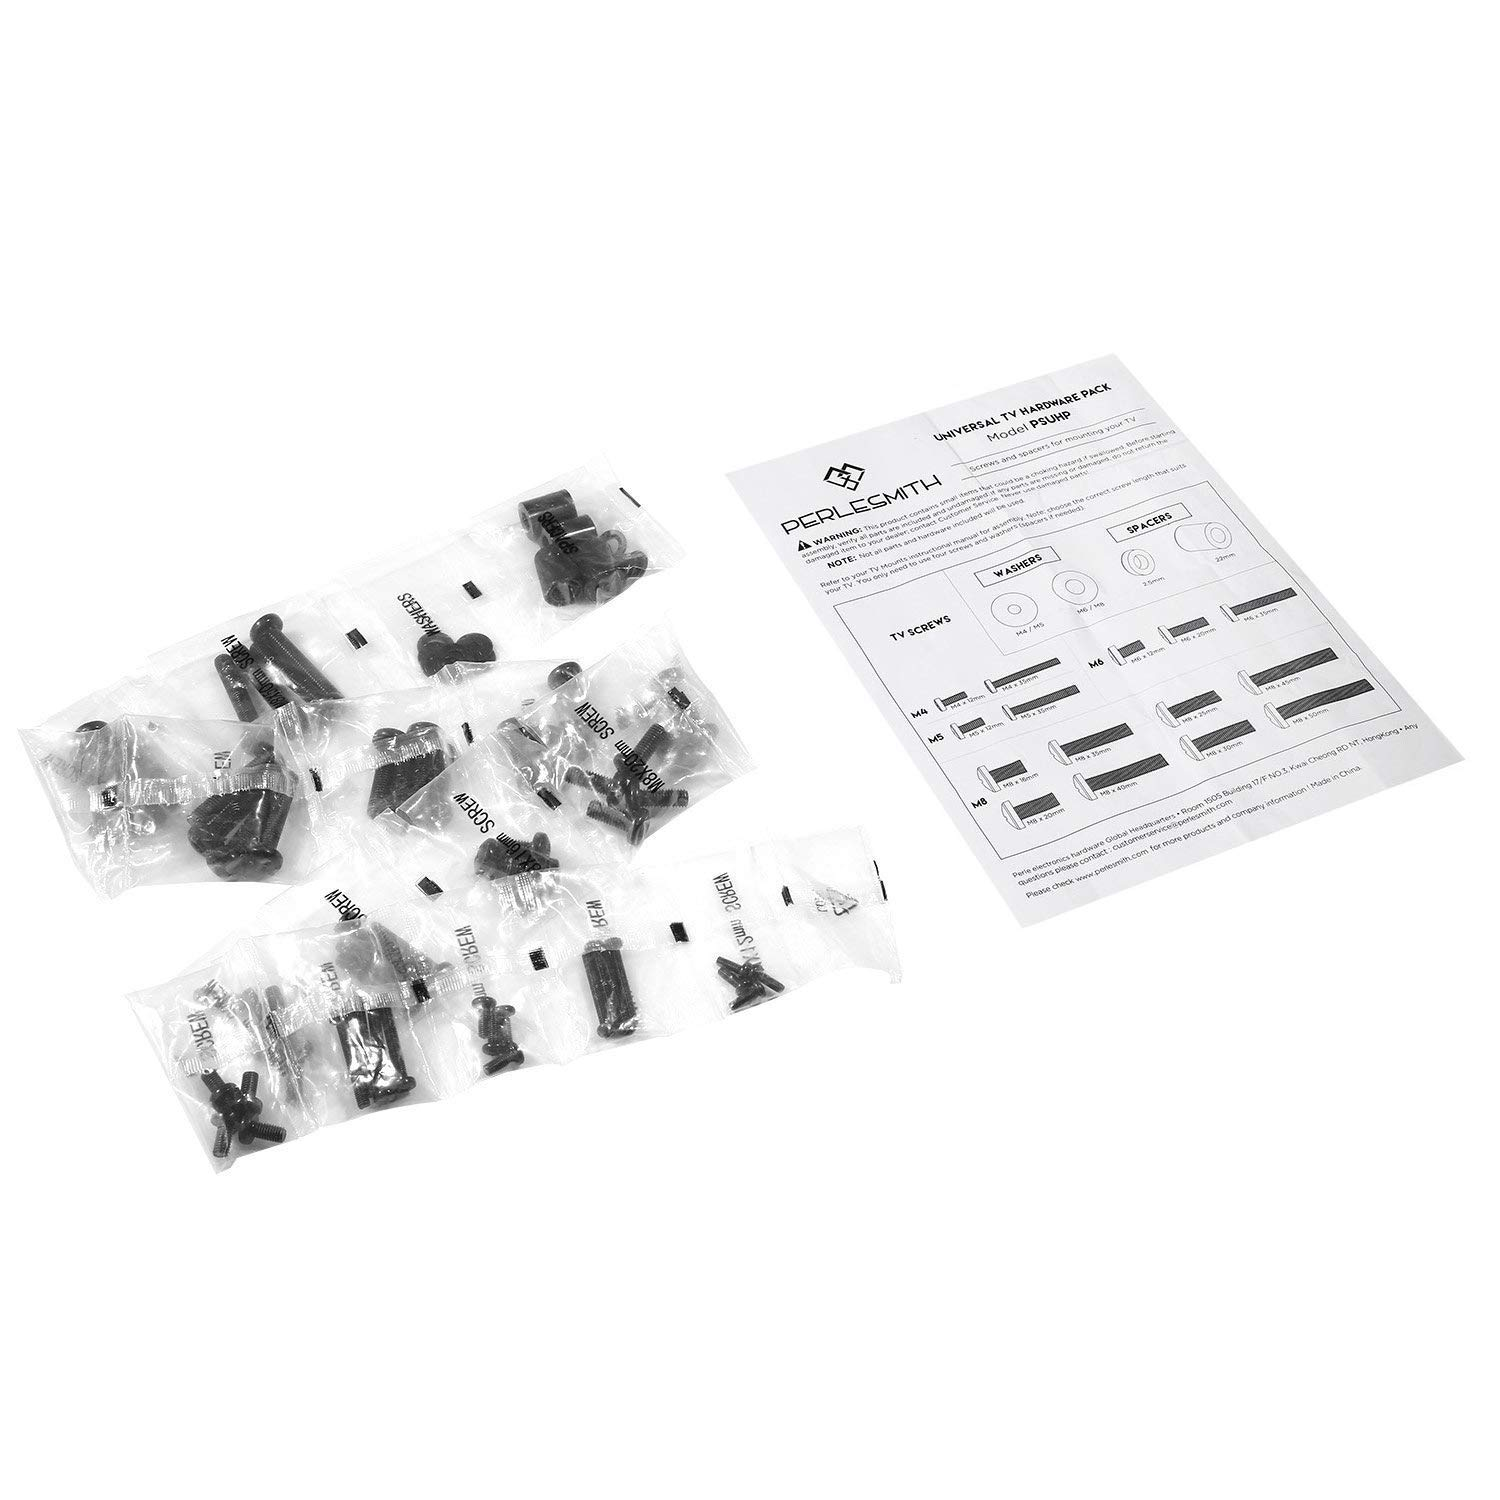 PERLESMITH Universal TV Mounting Hardware Kit Fits Most TVs Black Includes M4 M5 M6 M8 TV Screws Washers and Spacers VESA Screw Set for TV and Monitor Phillips Screws